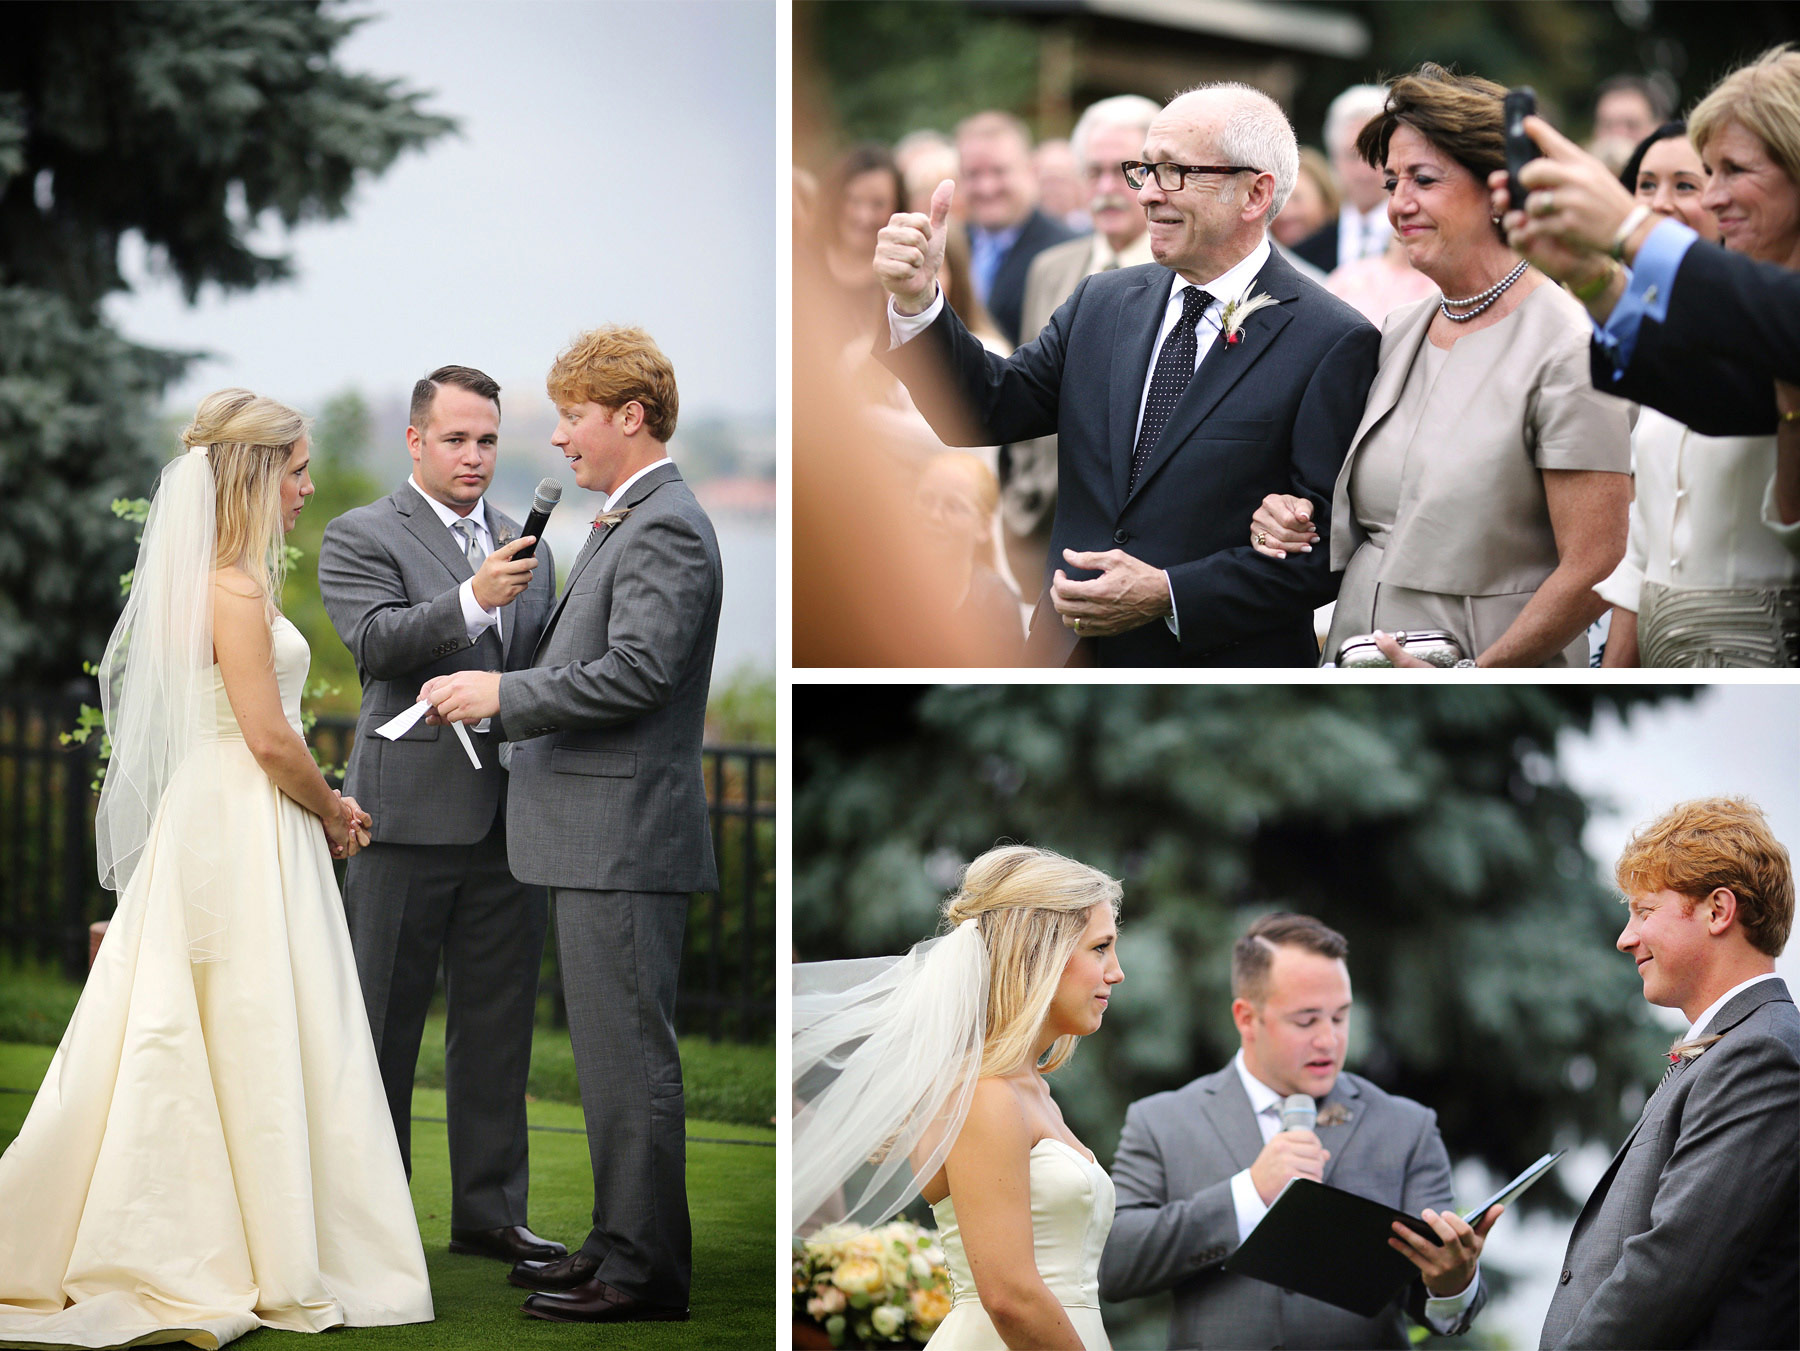 13-Minneapolis-Minnesota-Wedding-Photographer-by-Andrew-Vick-Photography-Fall-Autumn-Minikahda-Club-Ceremony-Bride-Groom-Father-Mother-Parents-Vows-Golf-Course-Krissy-and-James.jpg